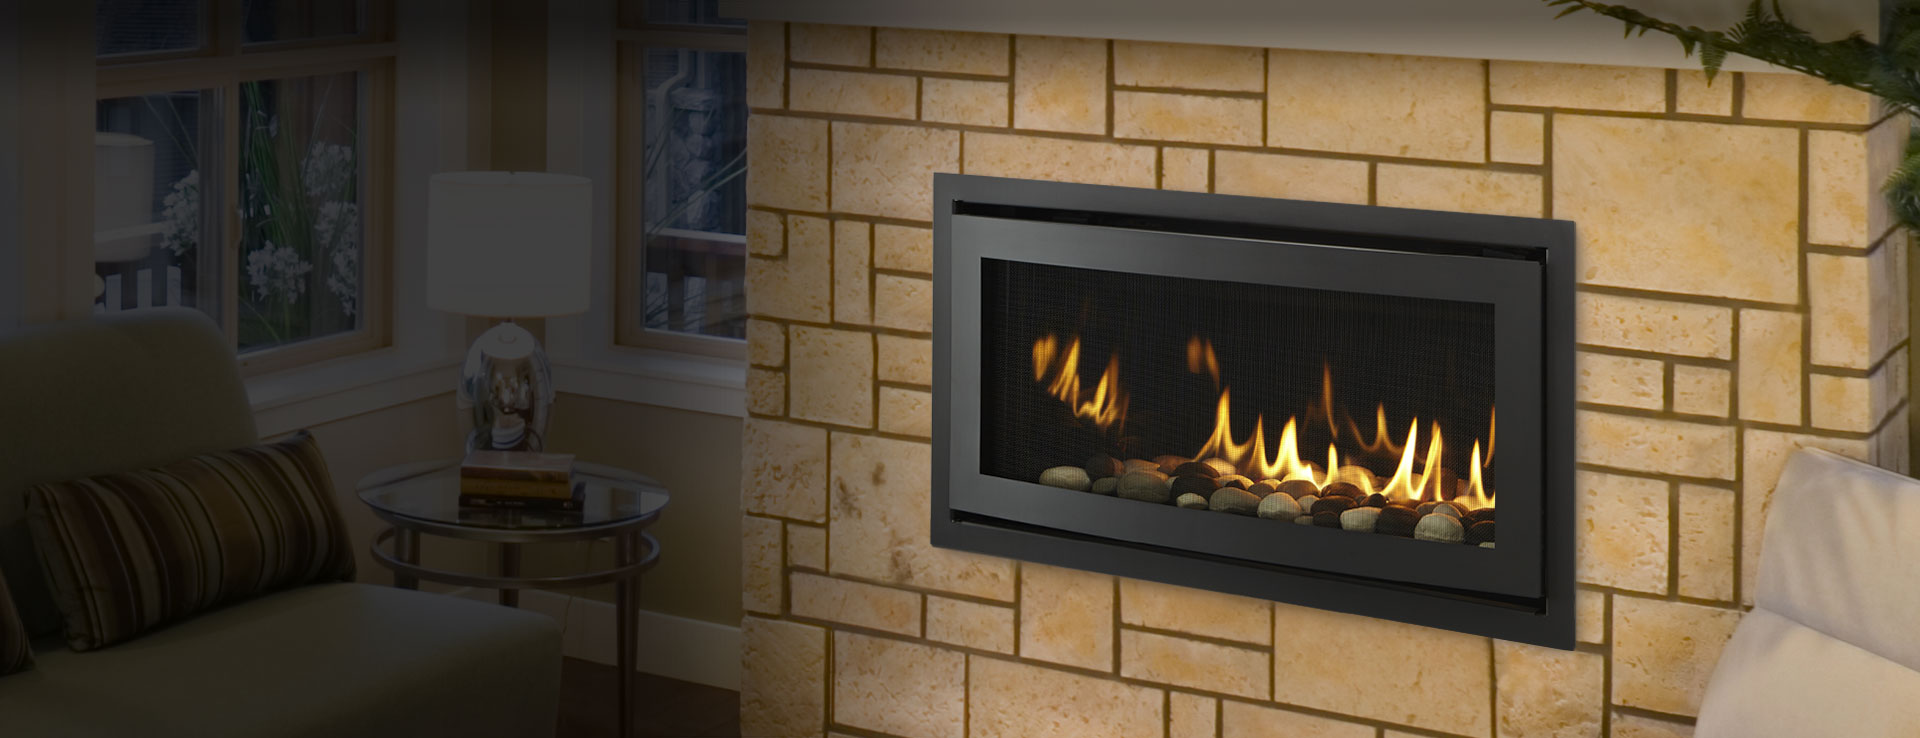 Gas Fireplaces  Rave  Kastle Fireplace